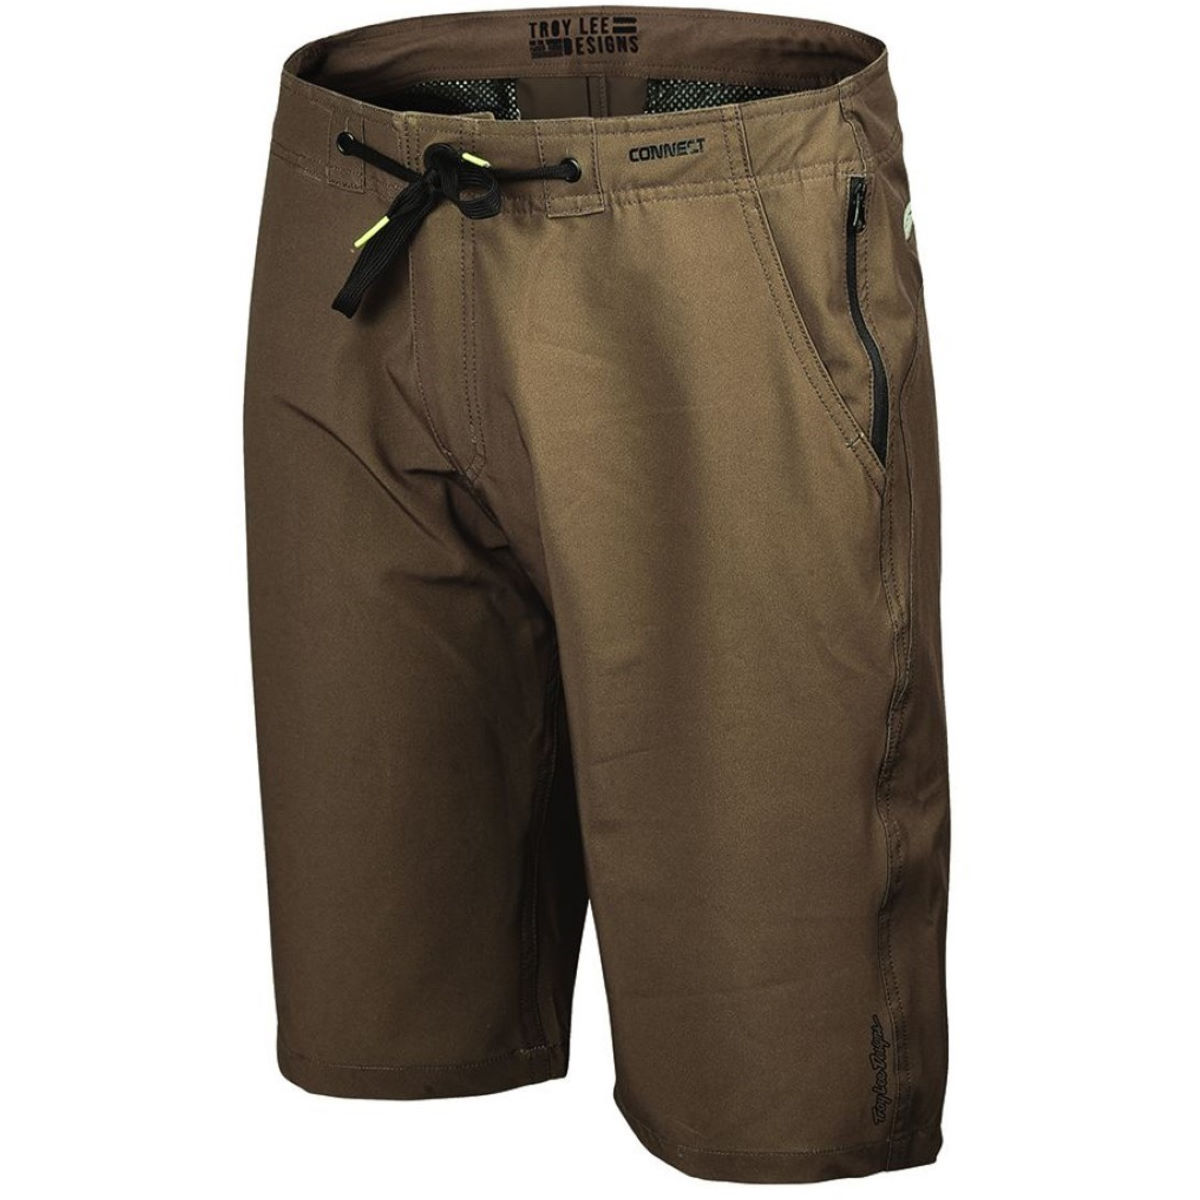 """""""Troy Lee Designs Connect Shorts - 32"""""""" Tan 